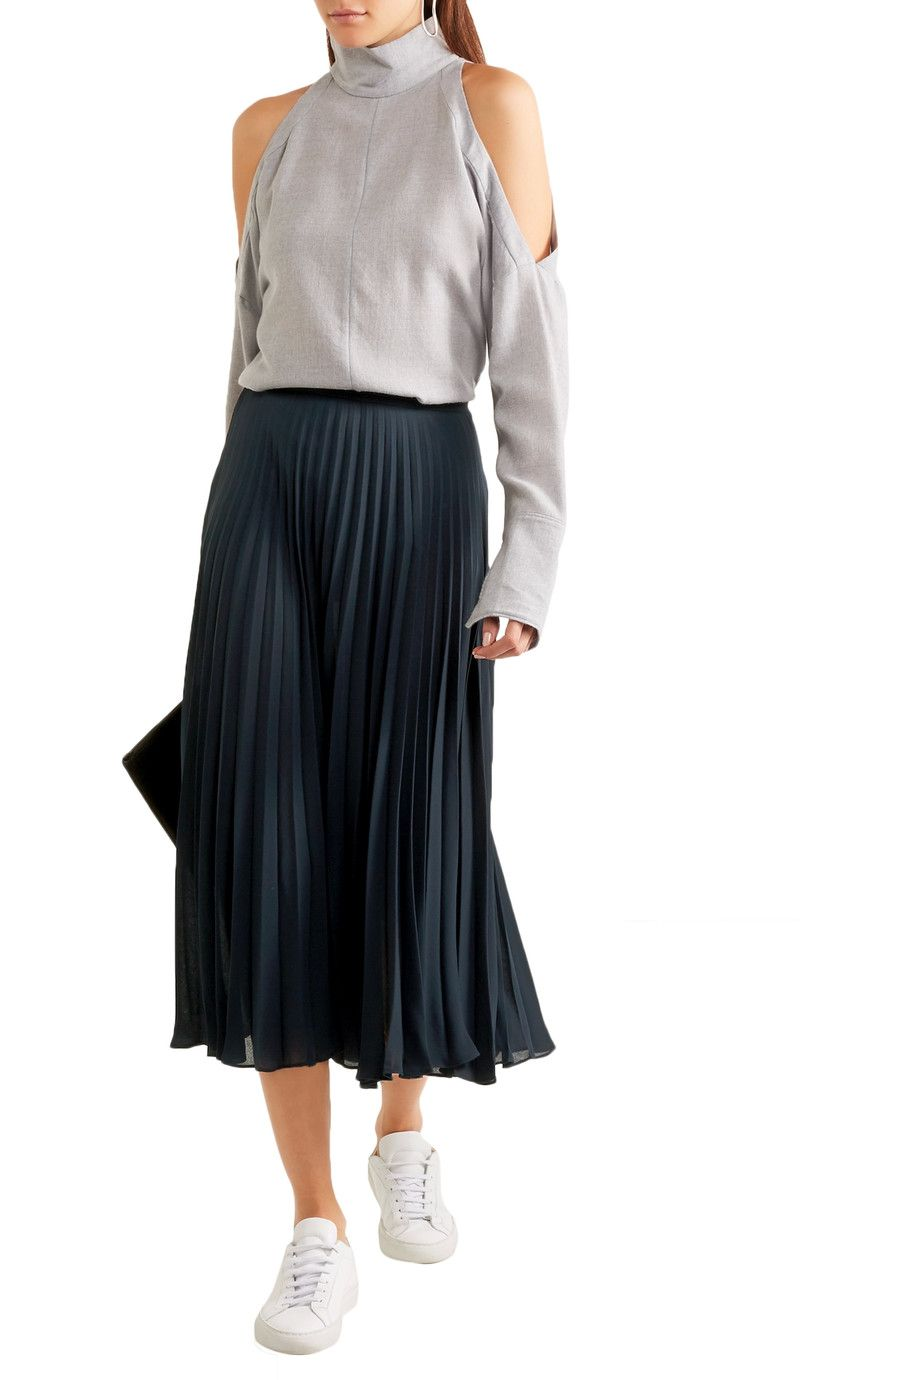 76babc7c5 Shop on-sale Vince Pleated chiffon midi skirt. Browse other discount  designer Skirts & more on The Most Fashionable Fashion Outlet, THE  OUTNET.COM